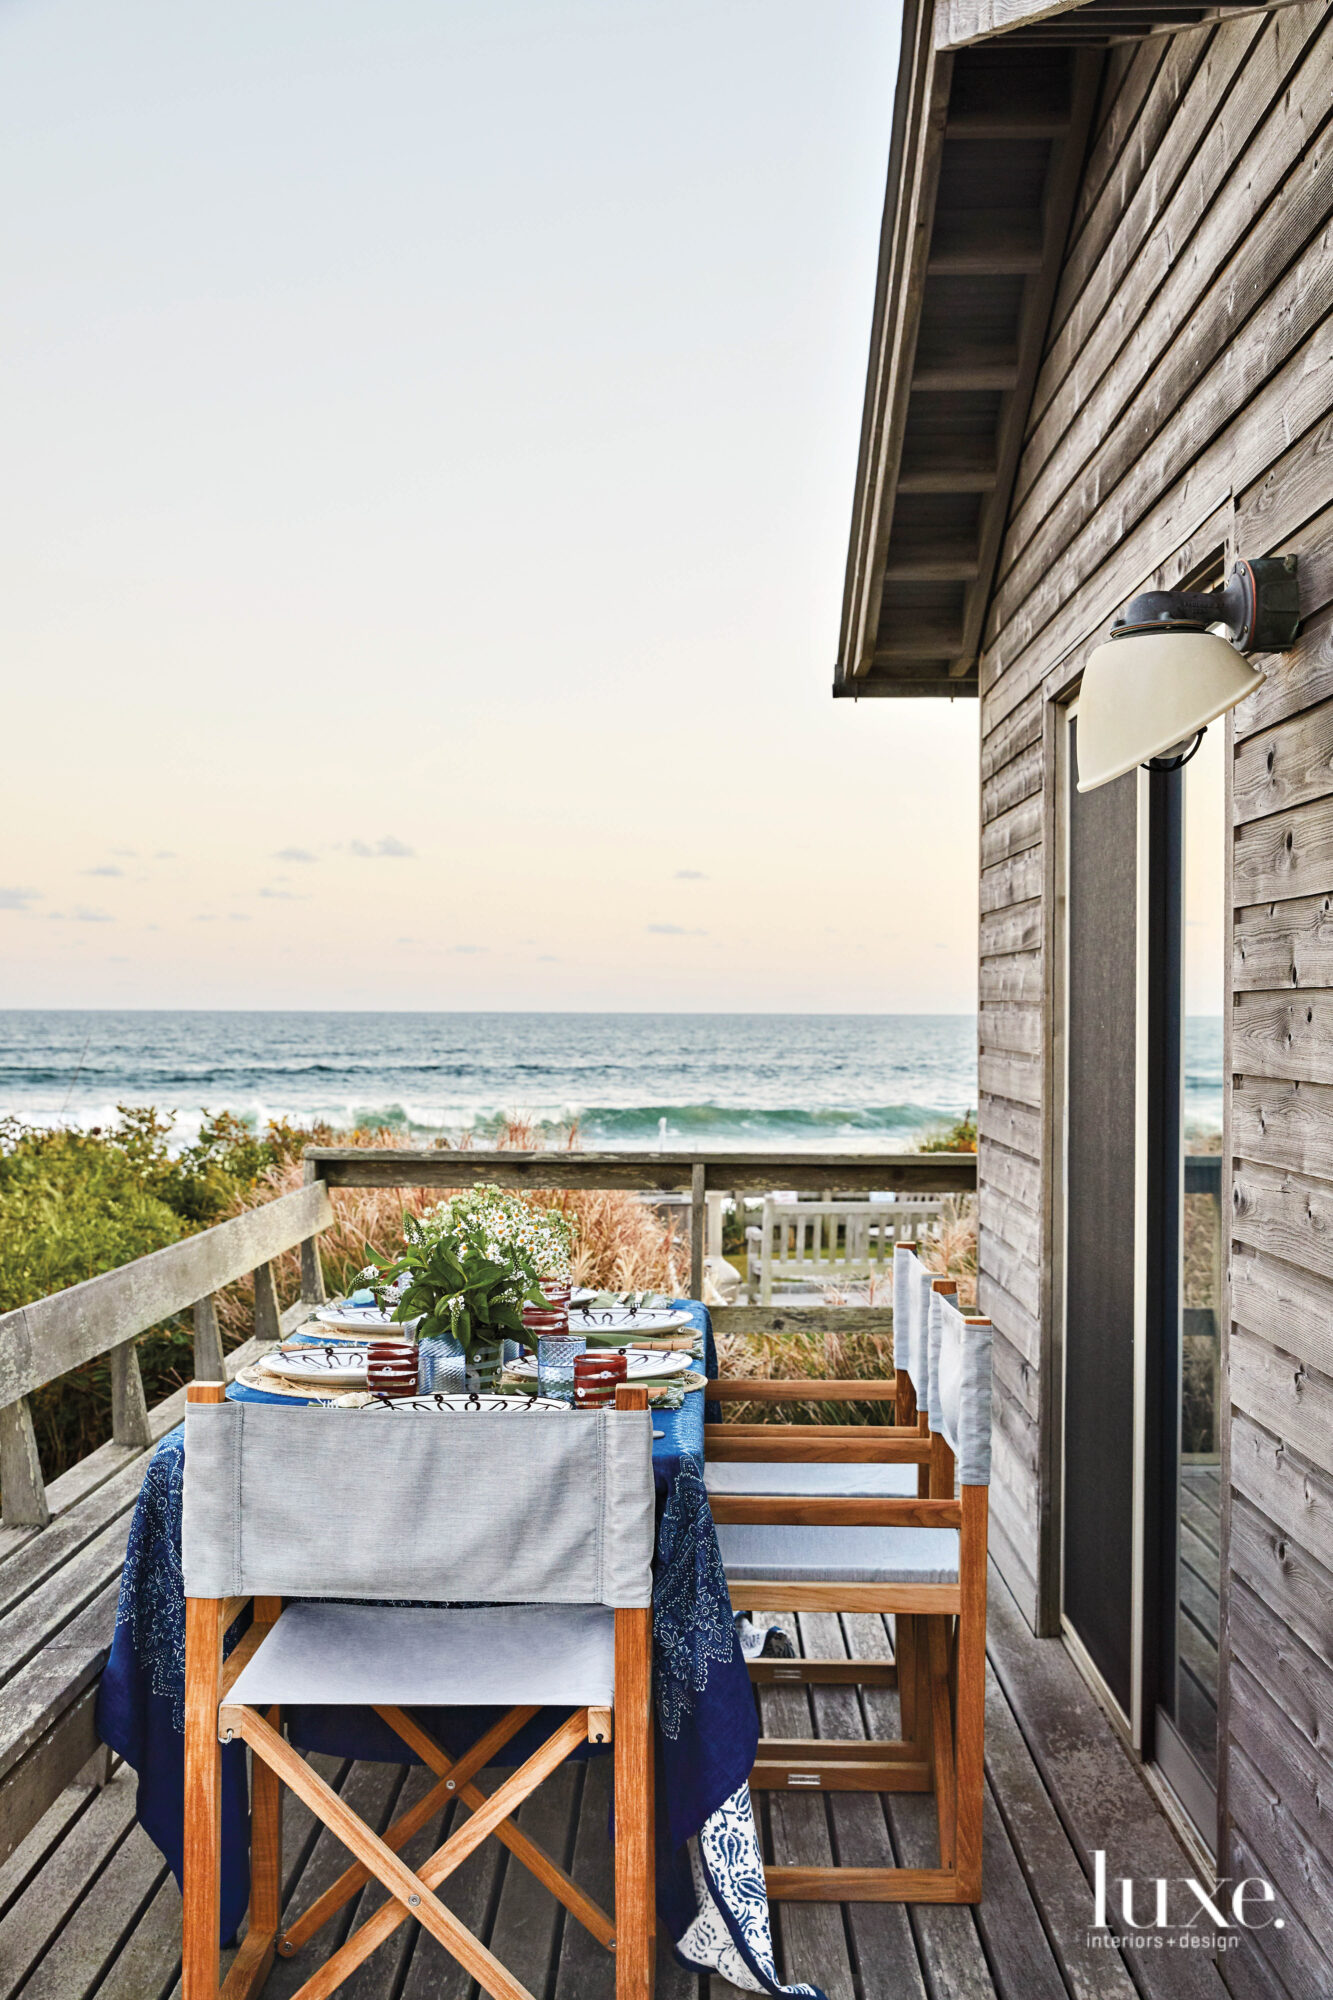 An ocean view lies beyond a set table in the Hamptons